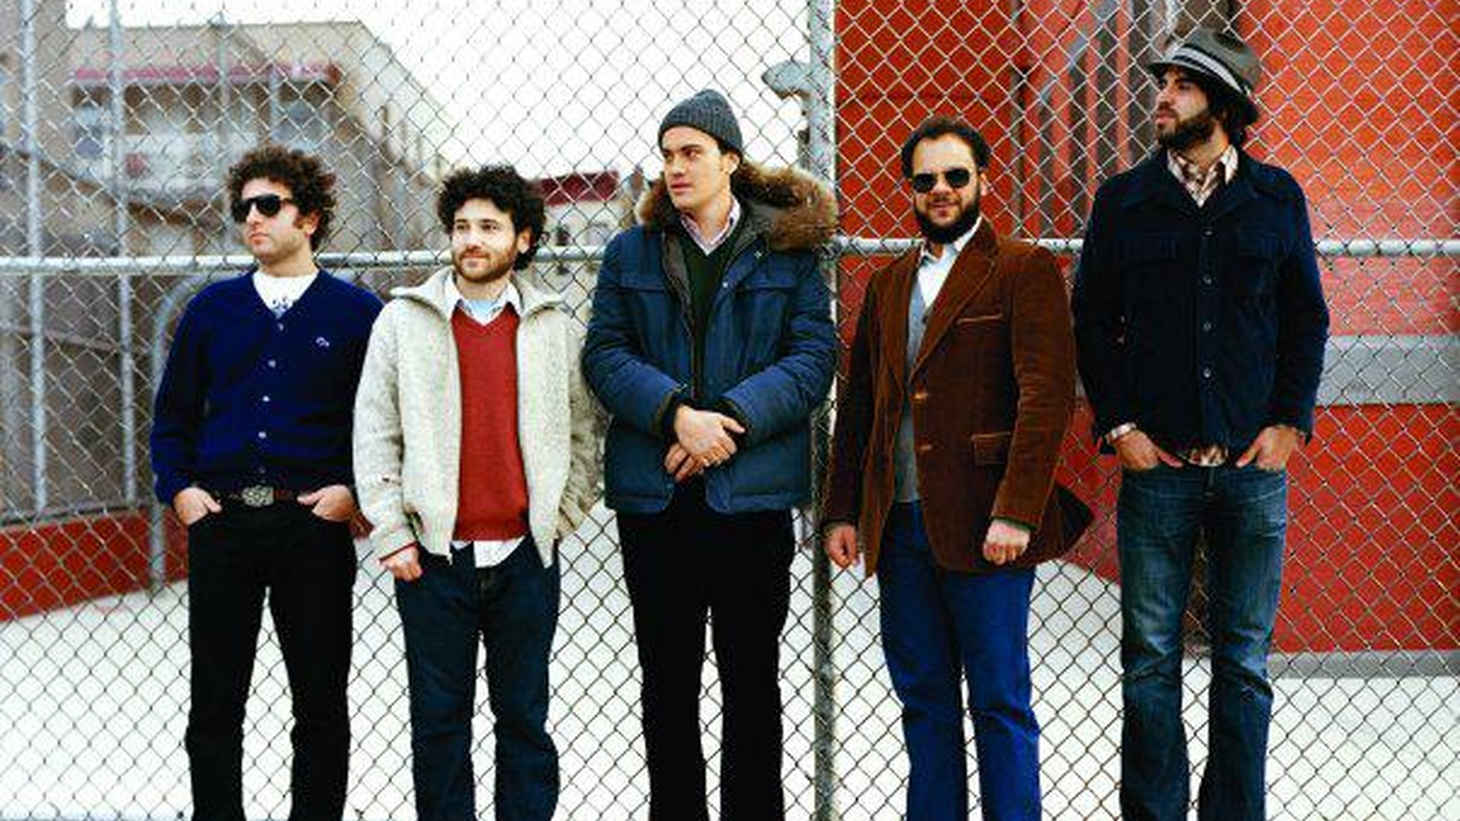 Brooklyn-based Menahan Street Band is made up of a bunch of multi-instrumentalists whose funky riffs are often sampled. On the eve of their MBE live debut...